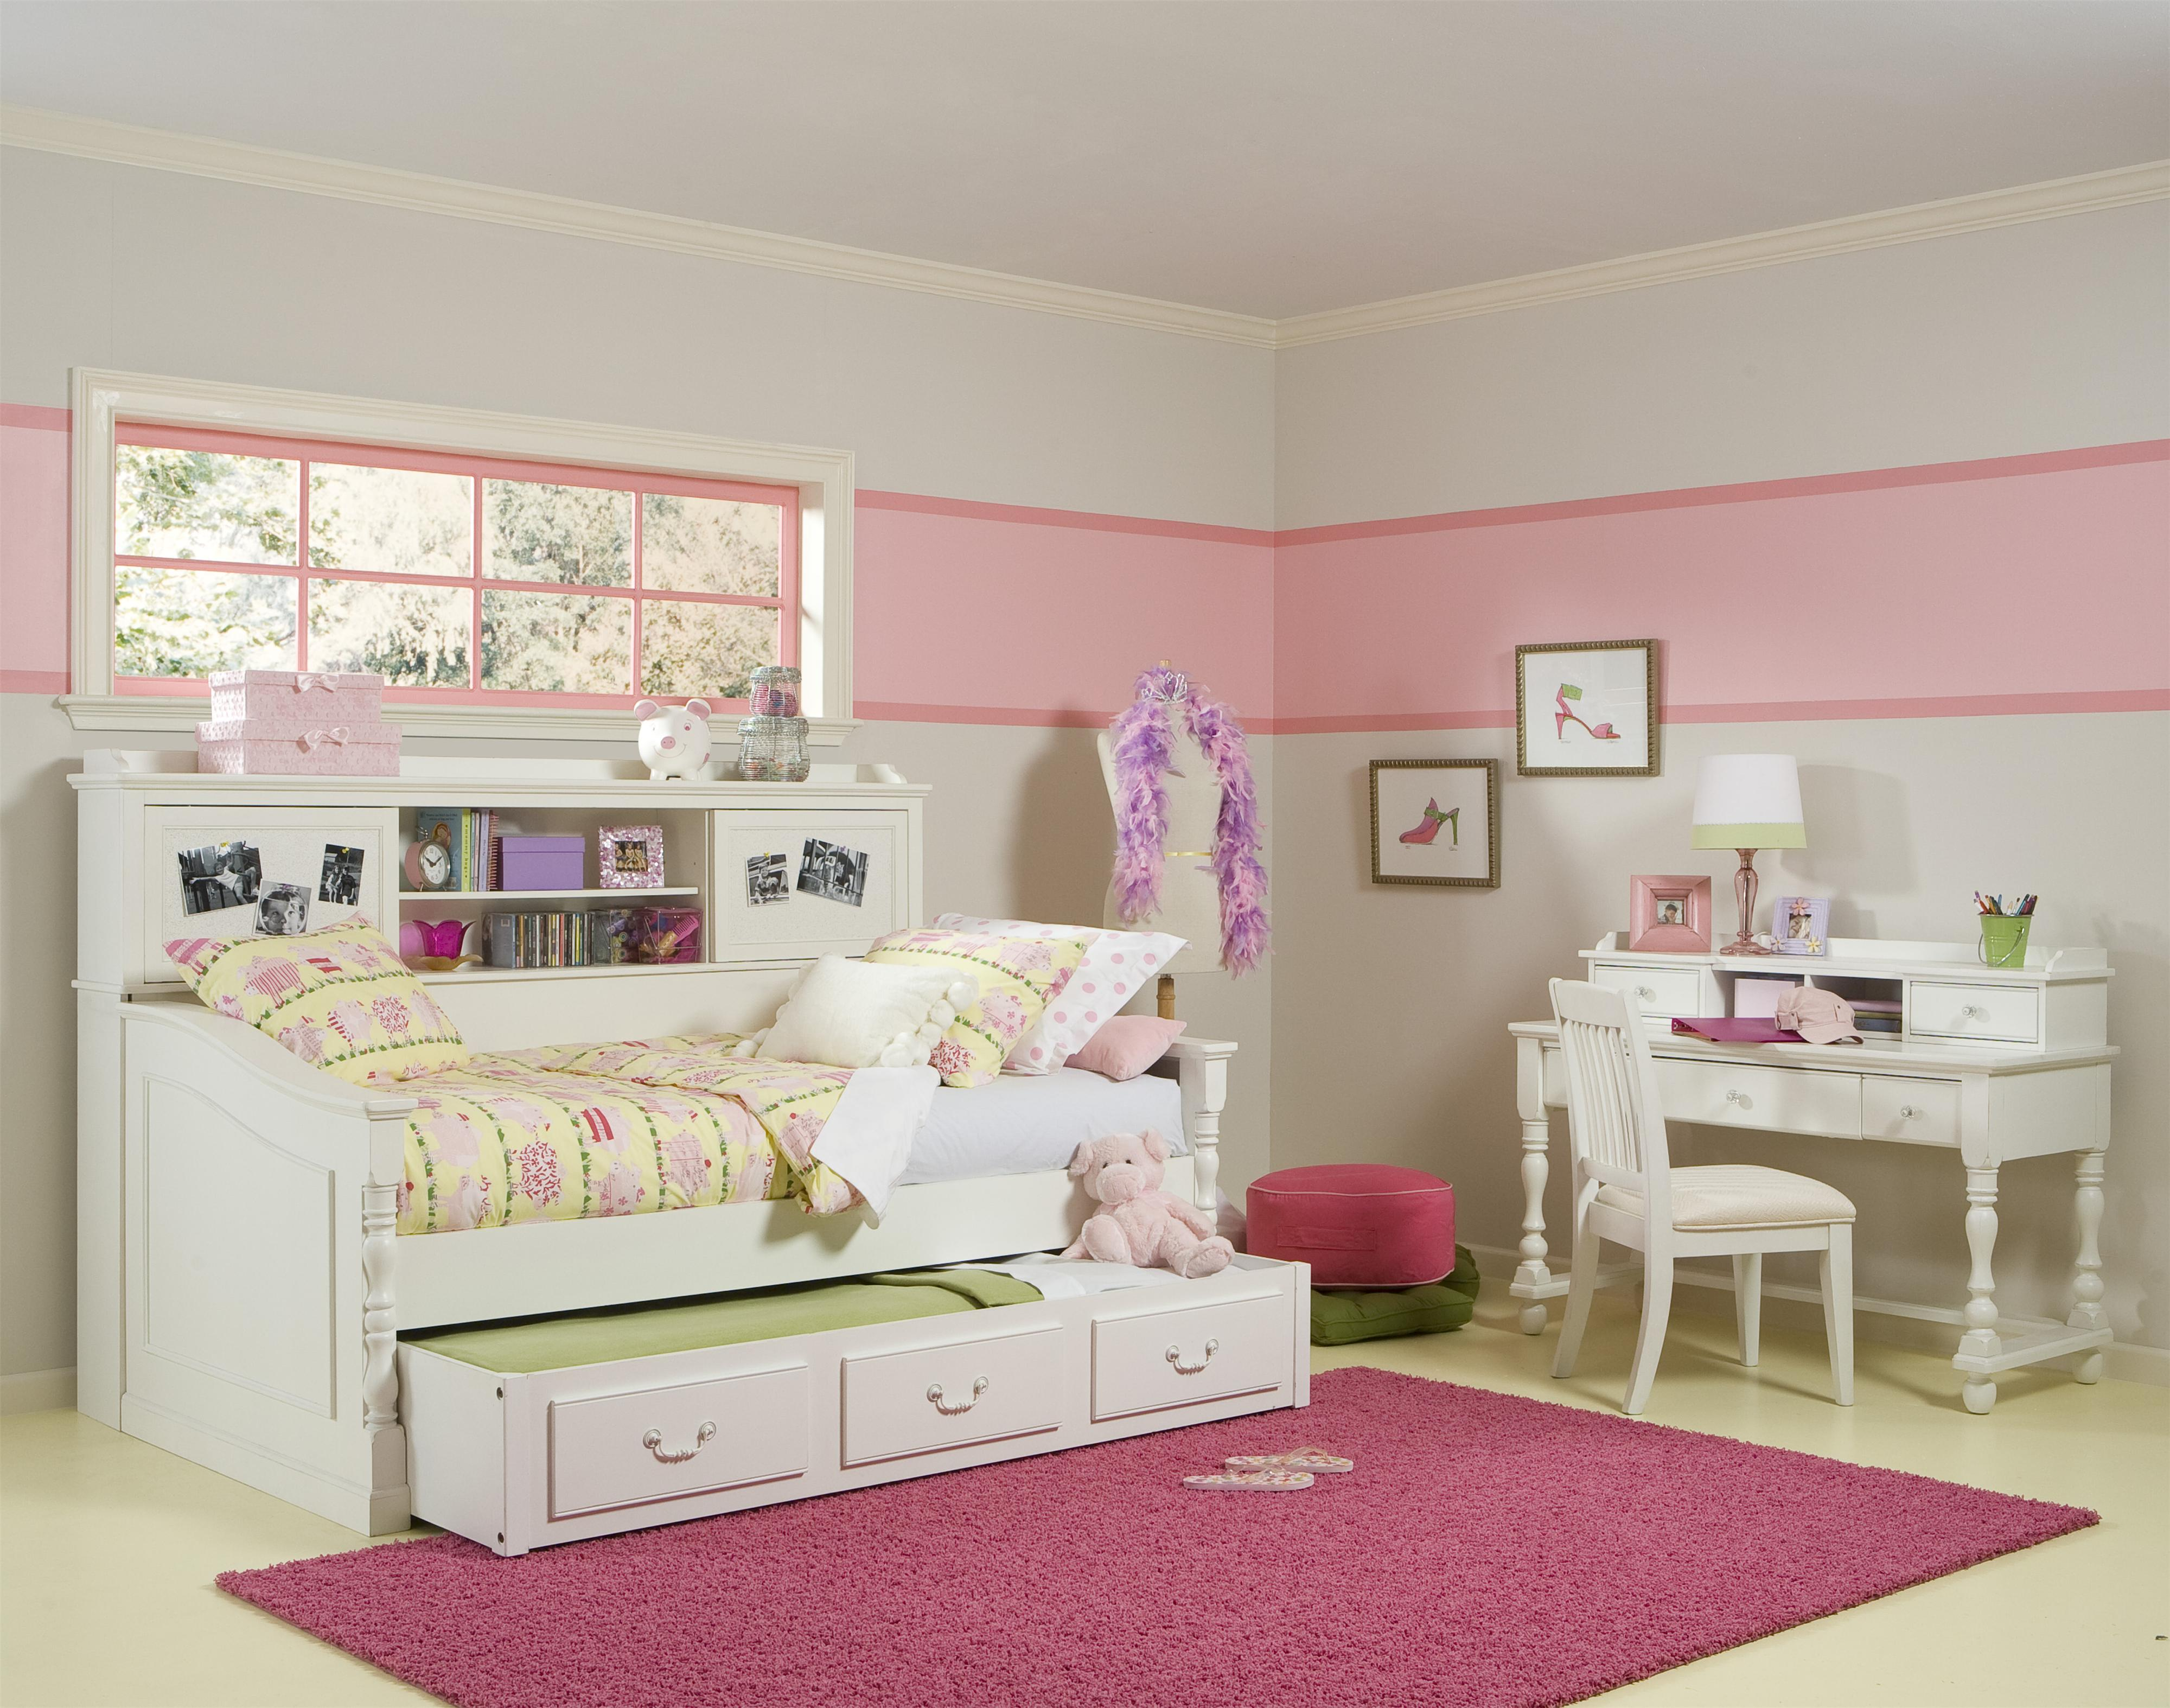 Bedroom Cheap Twin Beds For Teenagers Bunk Girls With Storage